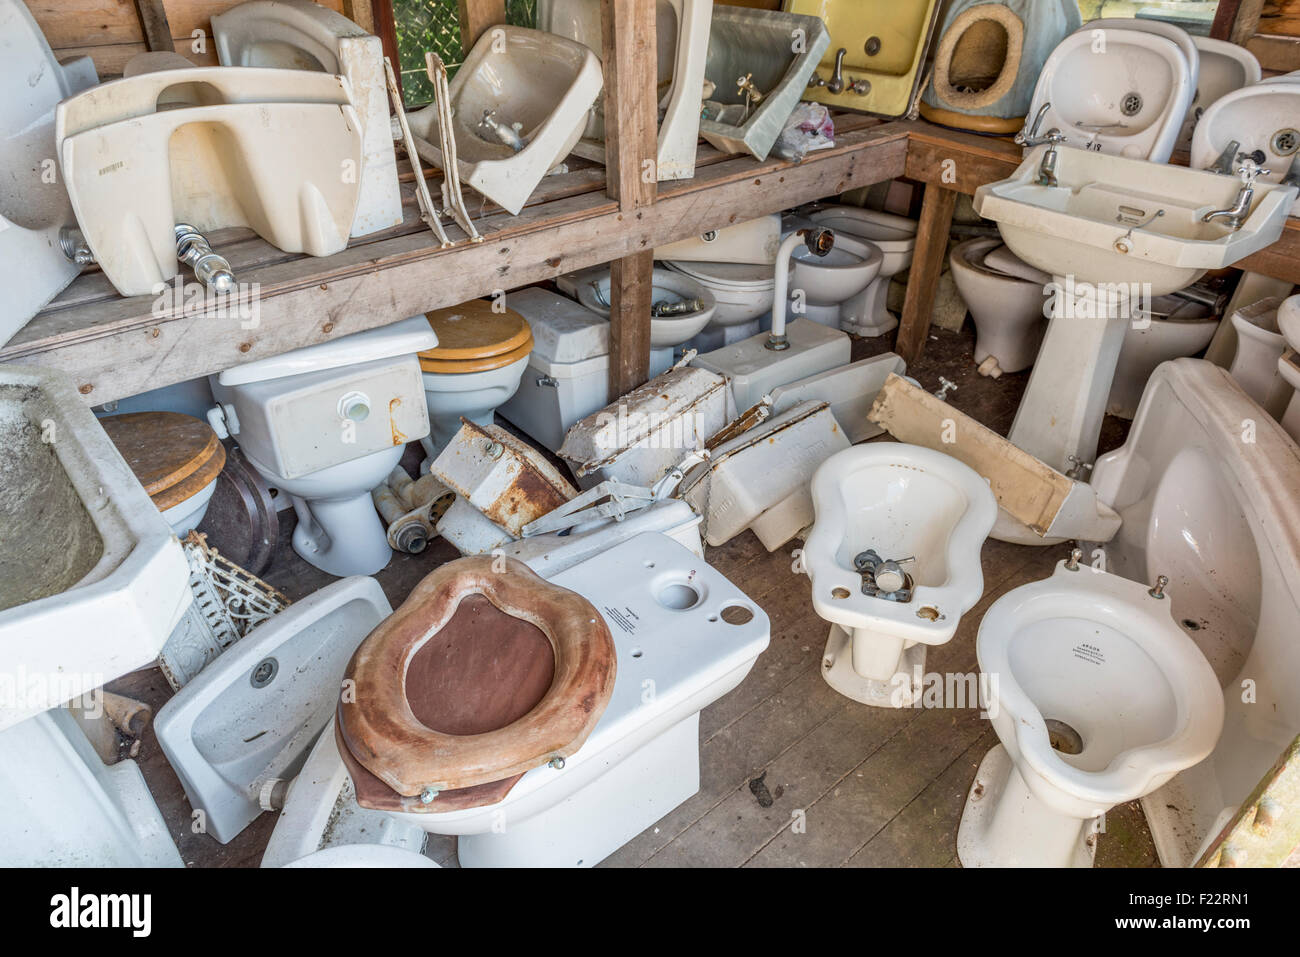 Various bathroom items at an architectural salvage yard in East ...